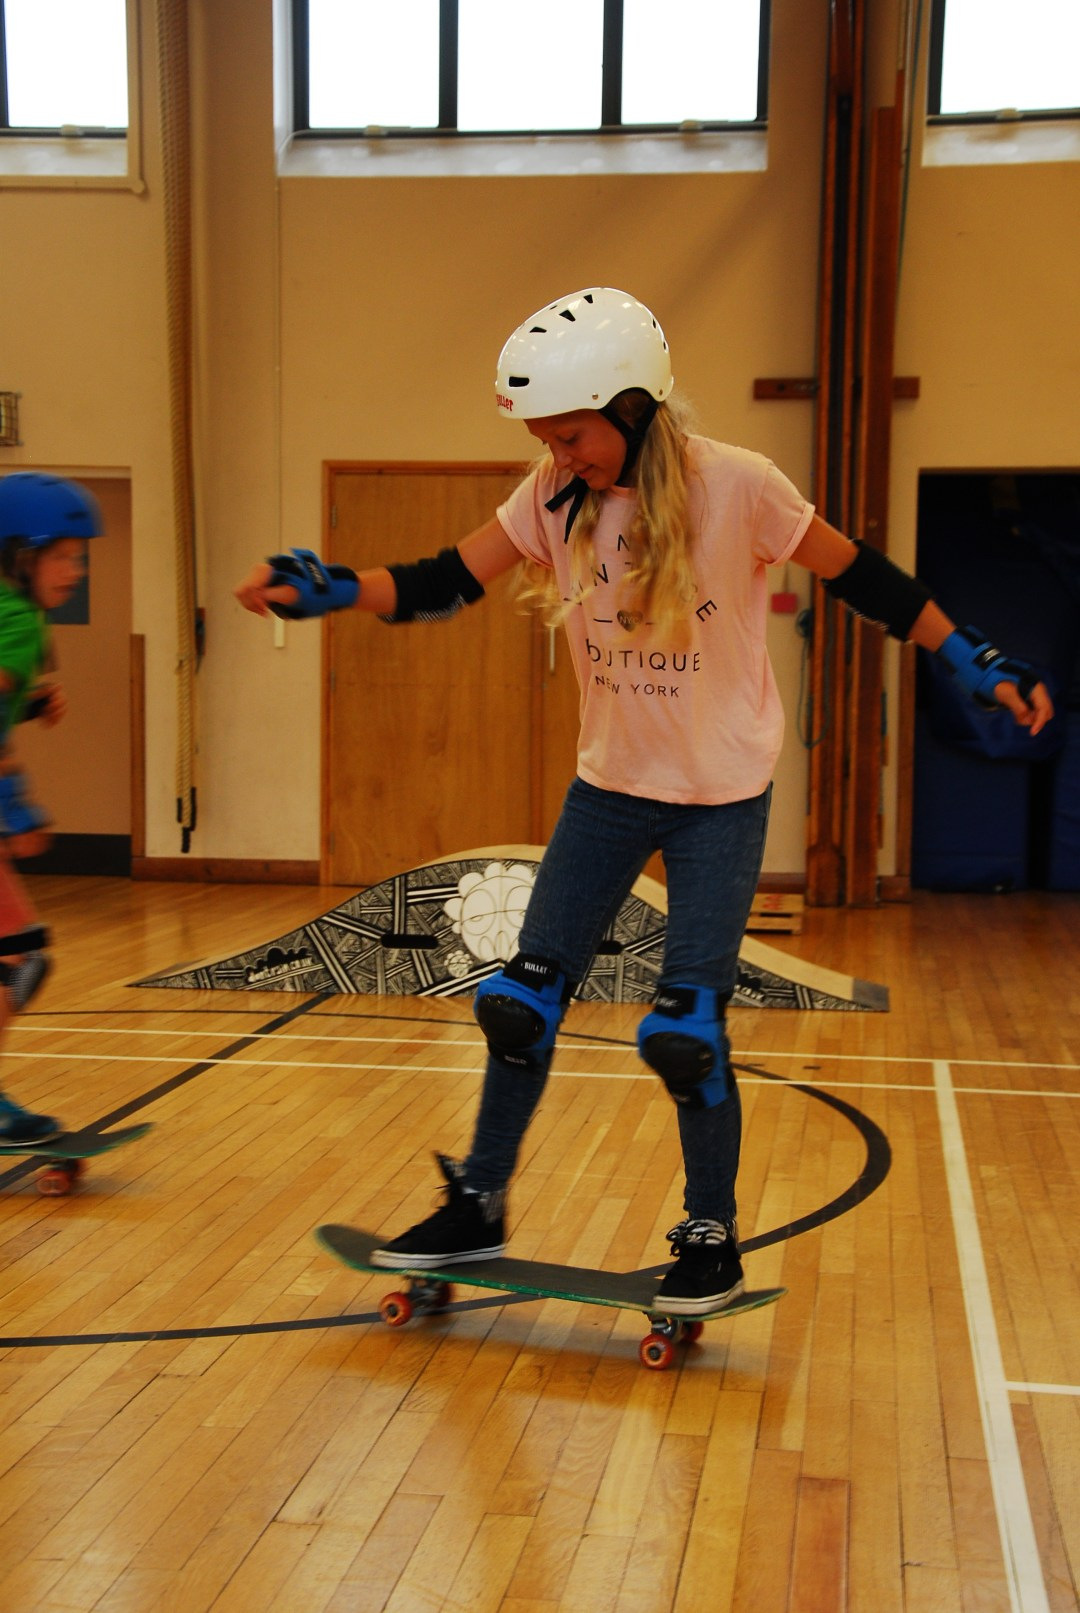 Don't Rain Skateboard instructing Priestlands - activities week Hampshire UK